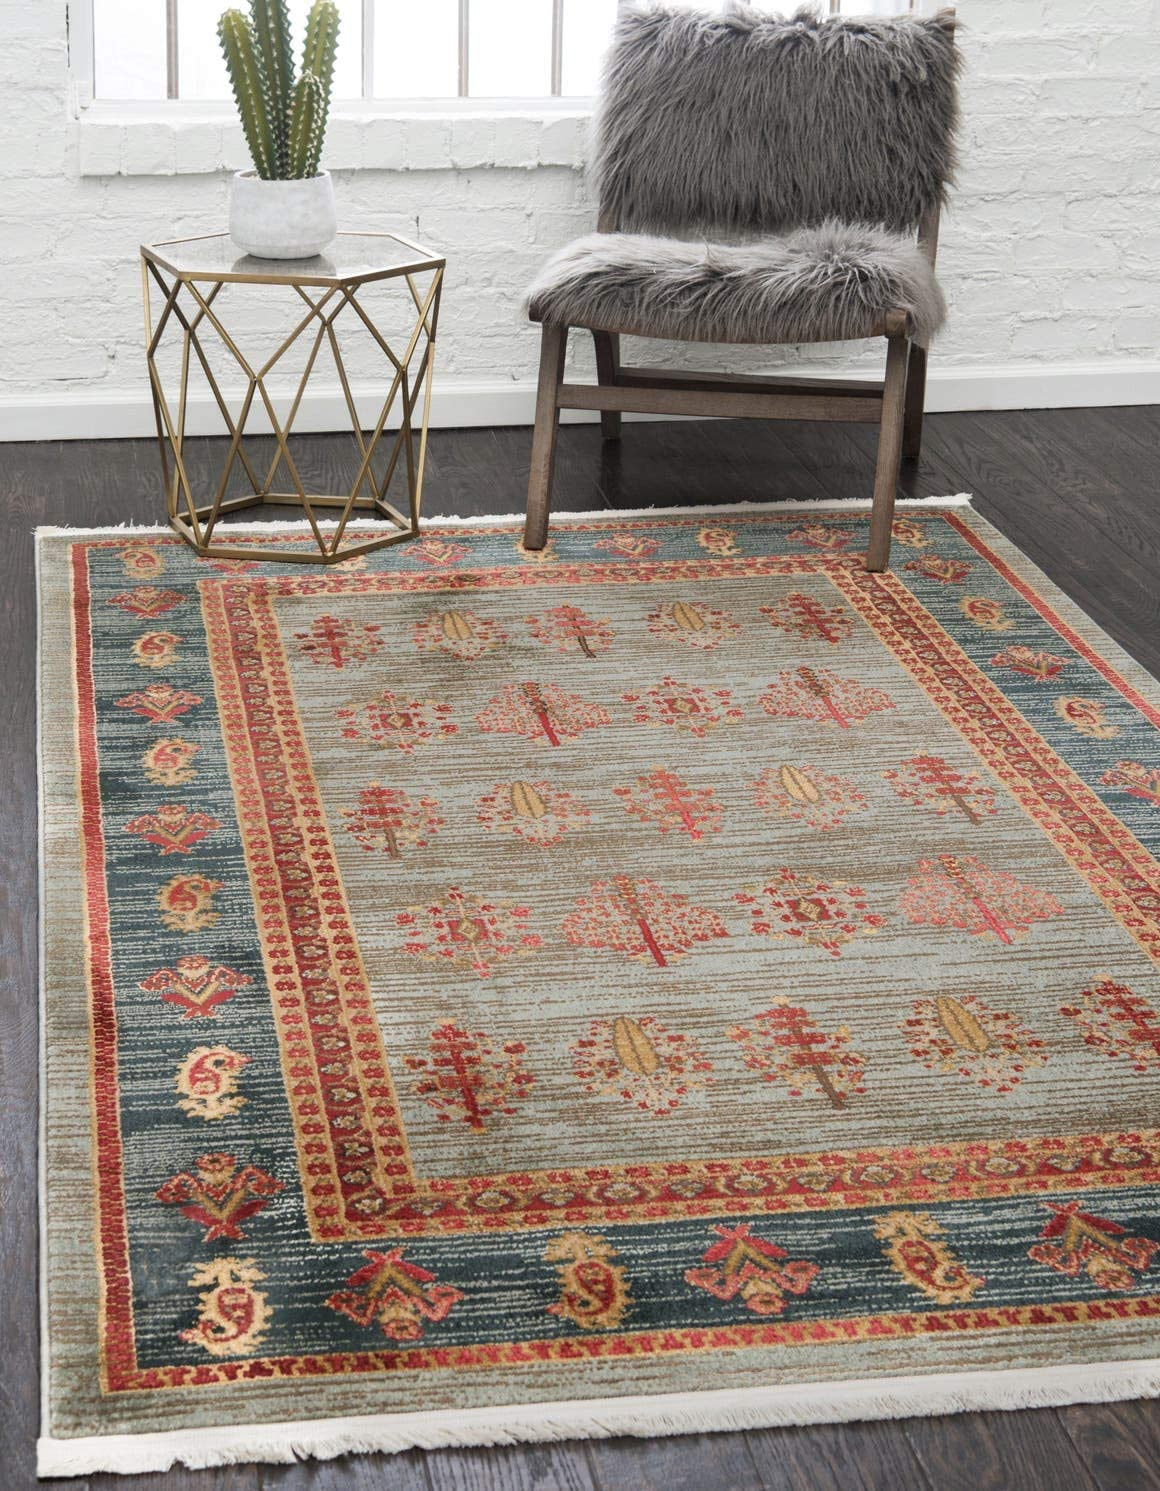 Unique Loom Fars Collection Tribal Modern Casual Light Blue Area Rug 8 0 x 10 0